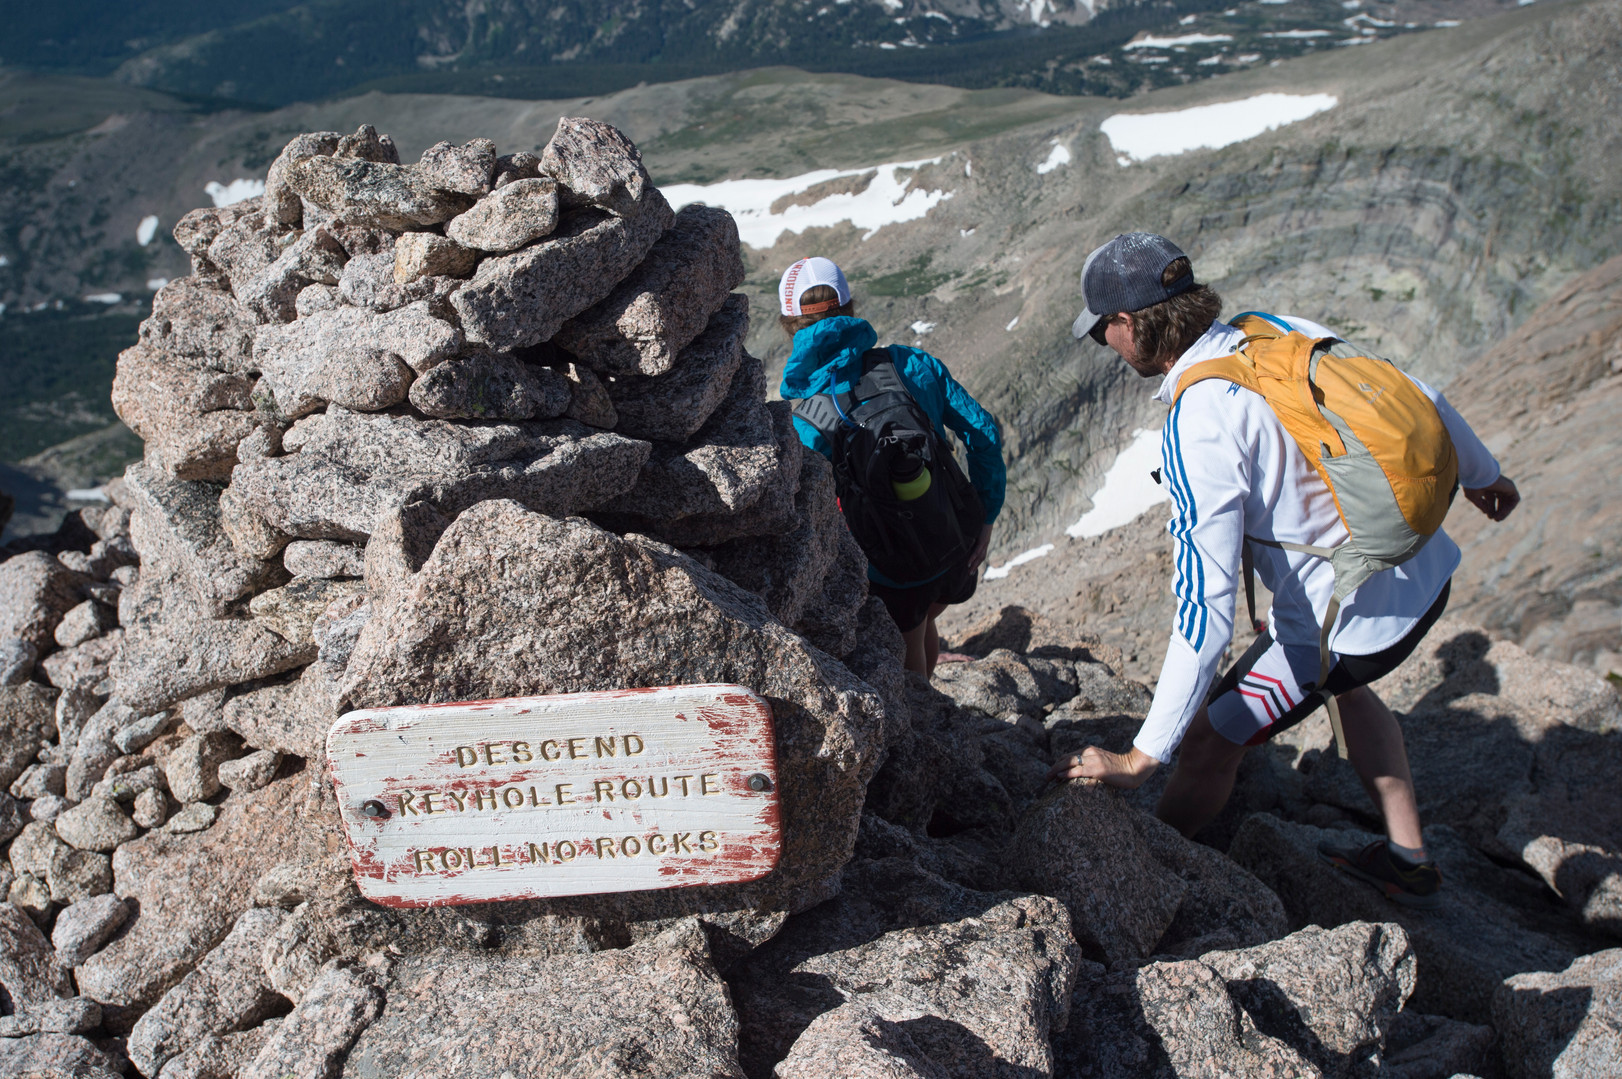 Climbers begin their descent from the summit of Longs Peak in Rocky Mountain National Park on Friday, July 19, 2017.